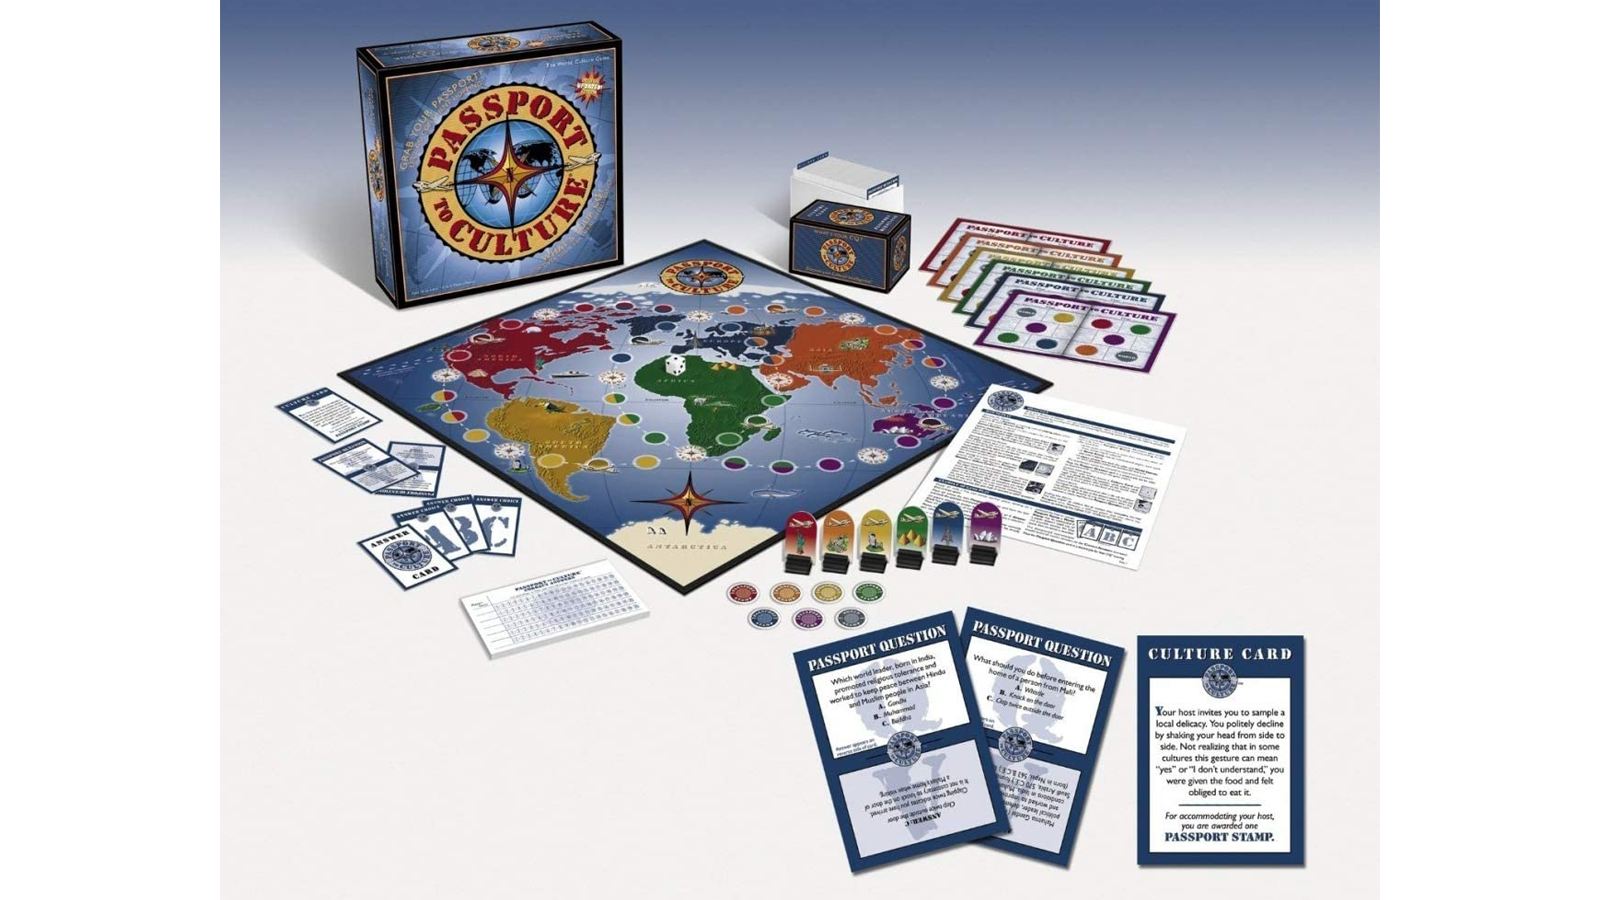 View of Passport to Culture board and game components